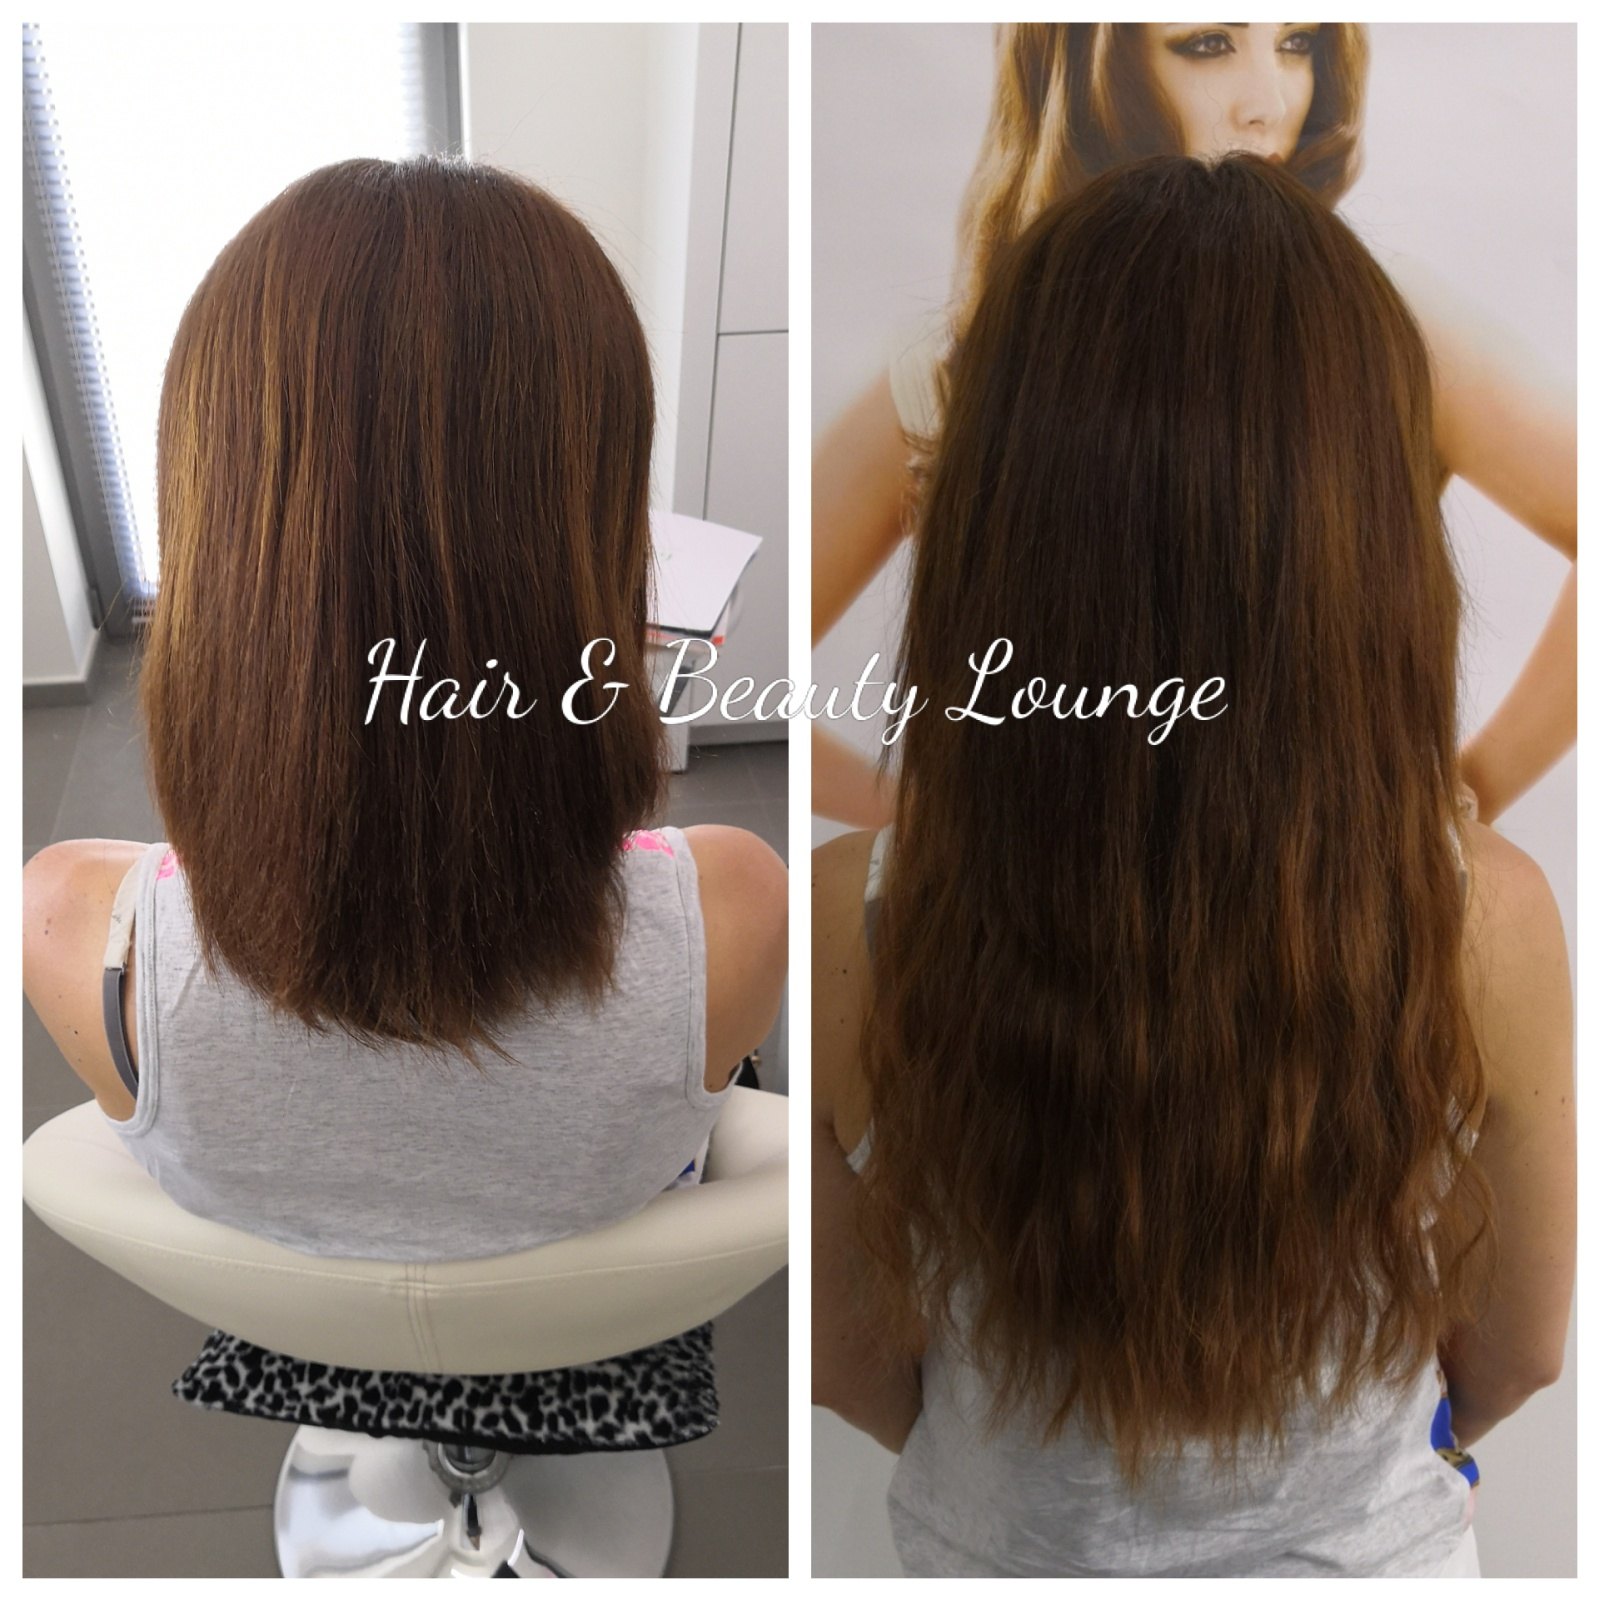 Hairextensions 16-08-2019